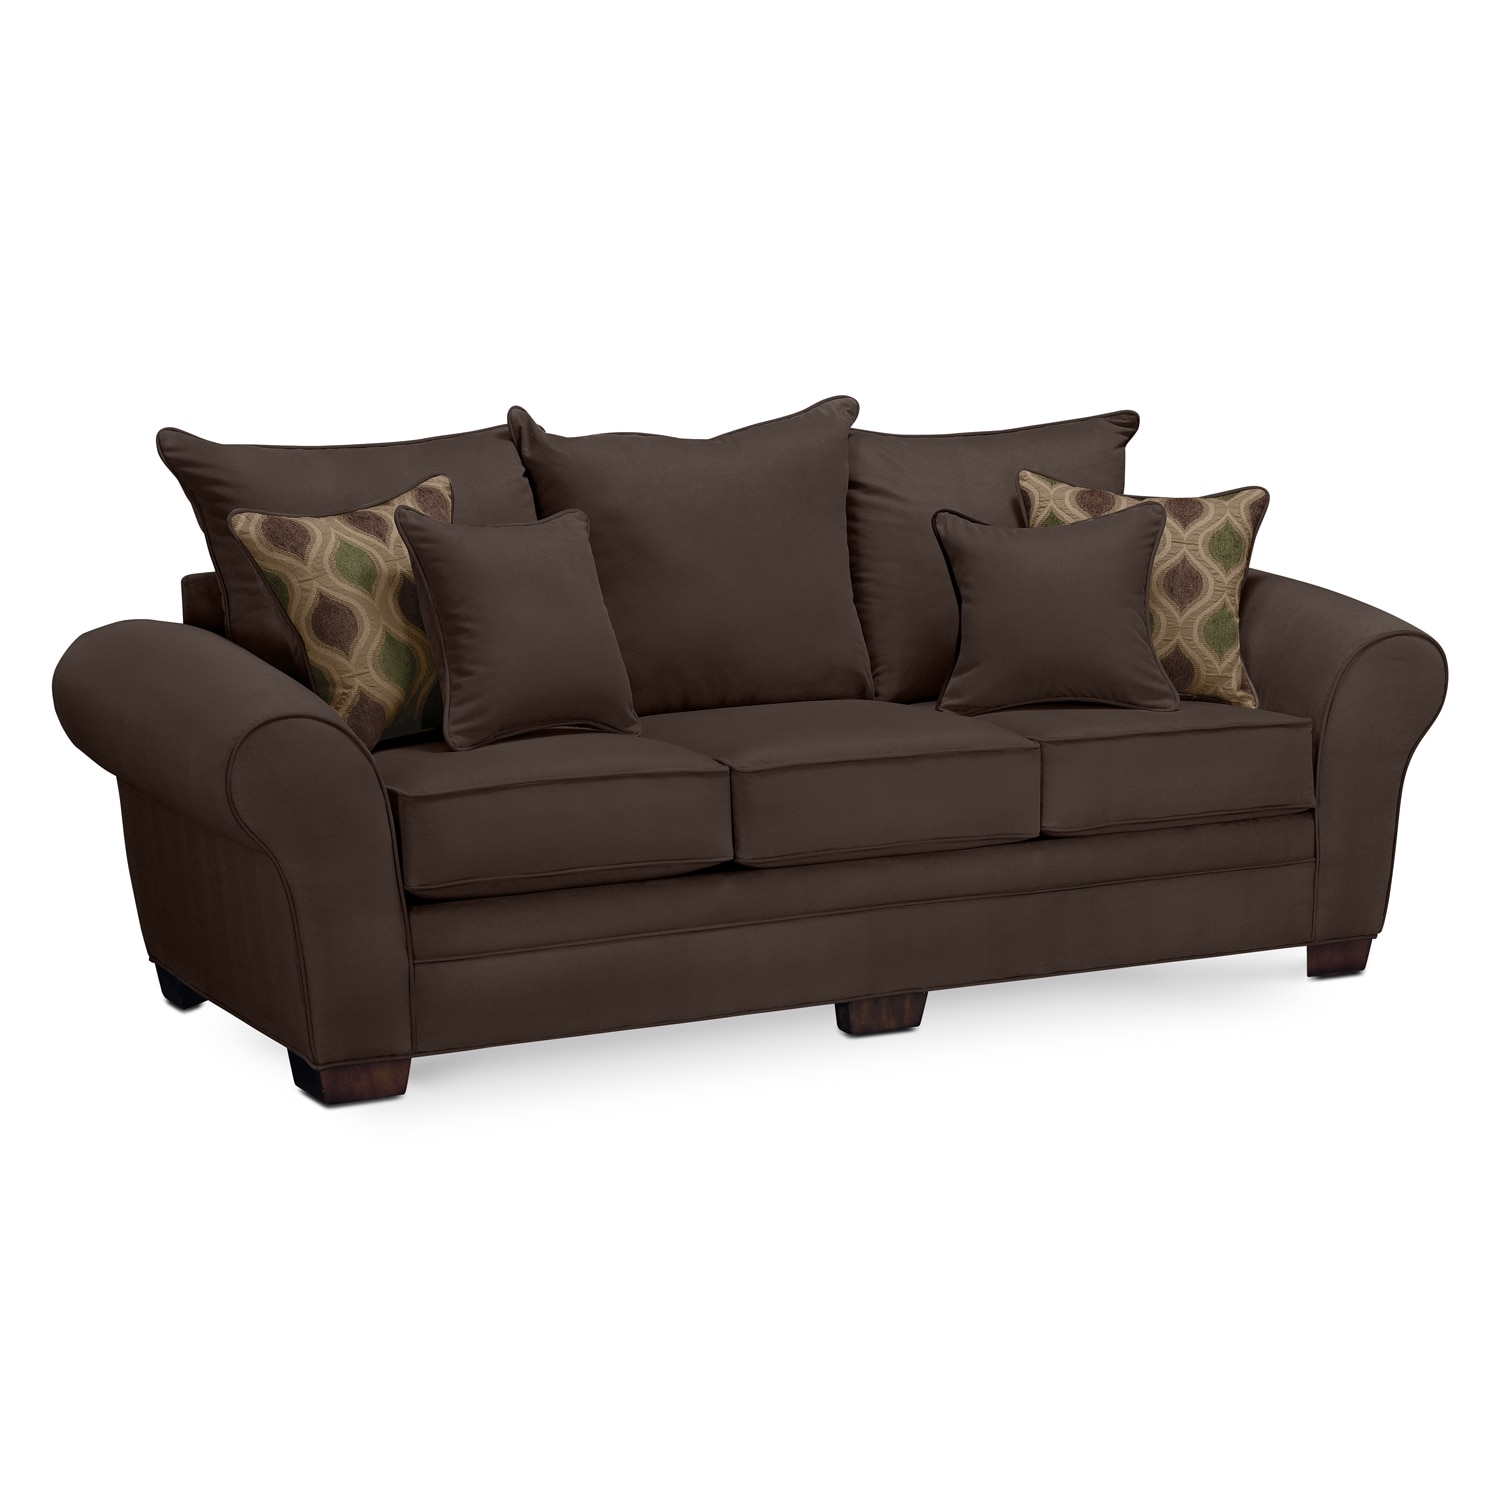 Living Room Furniture - Strauss Chocolate Sofa